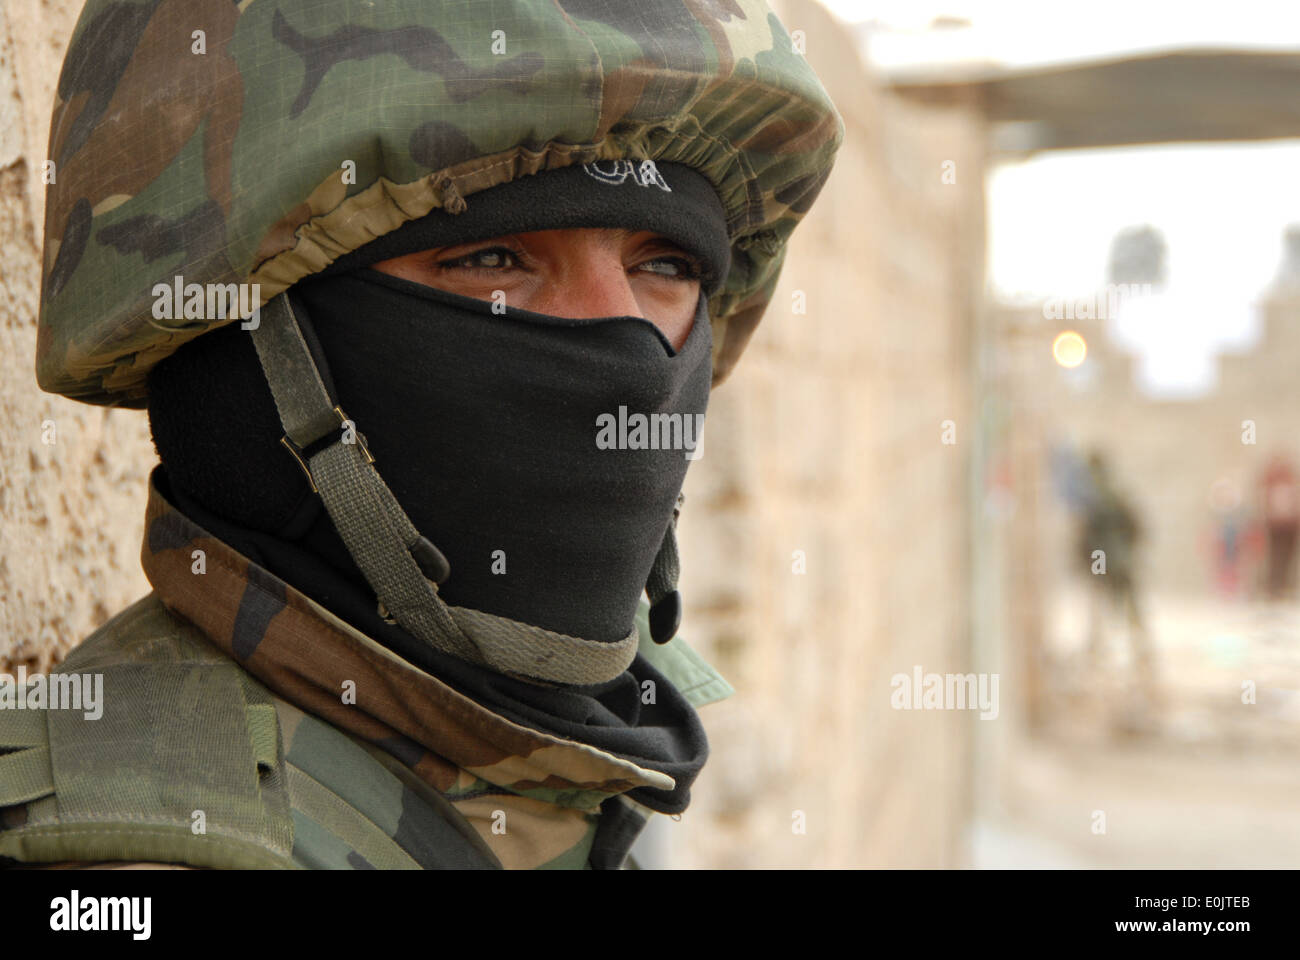 An Iraqi army soldier with the Emergency Unit secures the area while stopped during a joint neighborhood patrol with U.S. Army - Stock Image